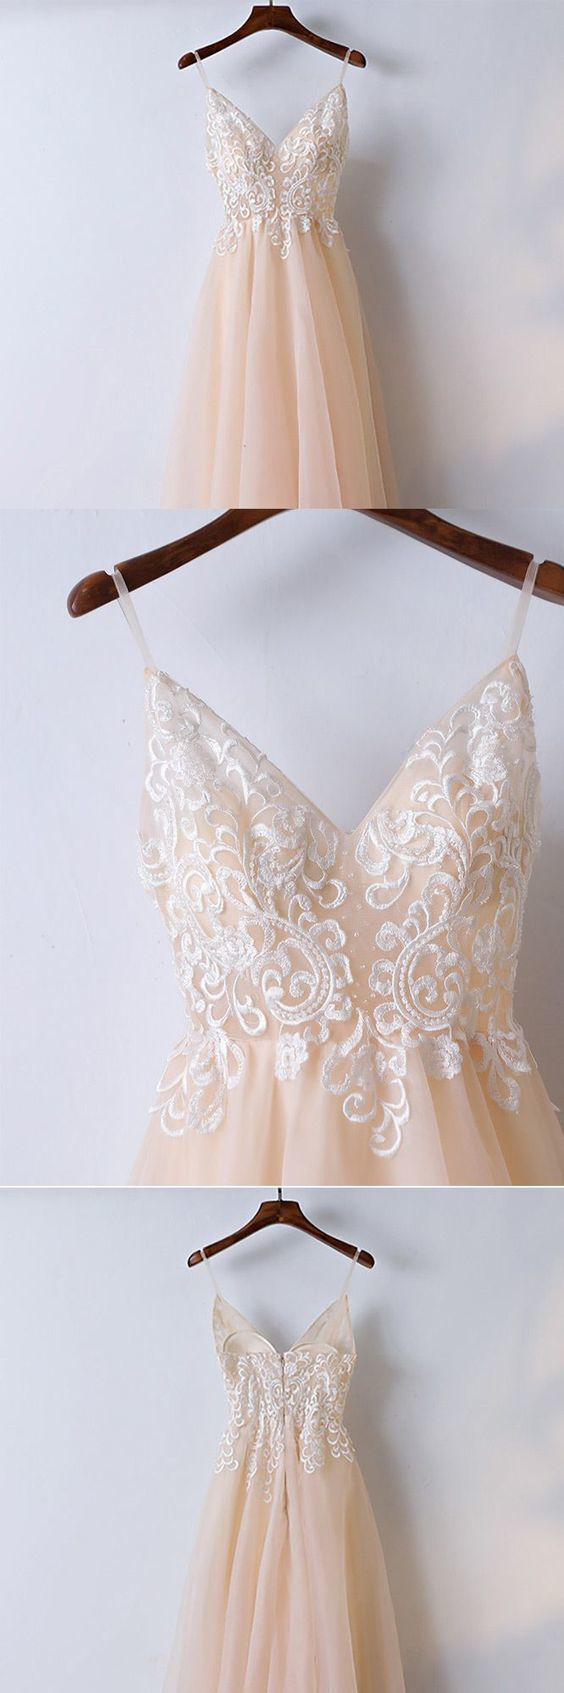 Champagne Lace Long Prom Dress With Spaghetti Straps